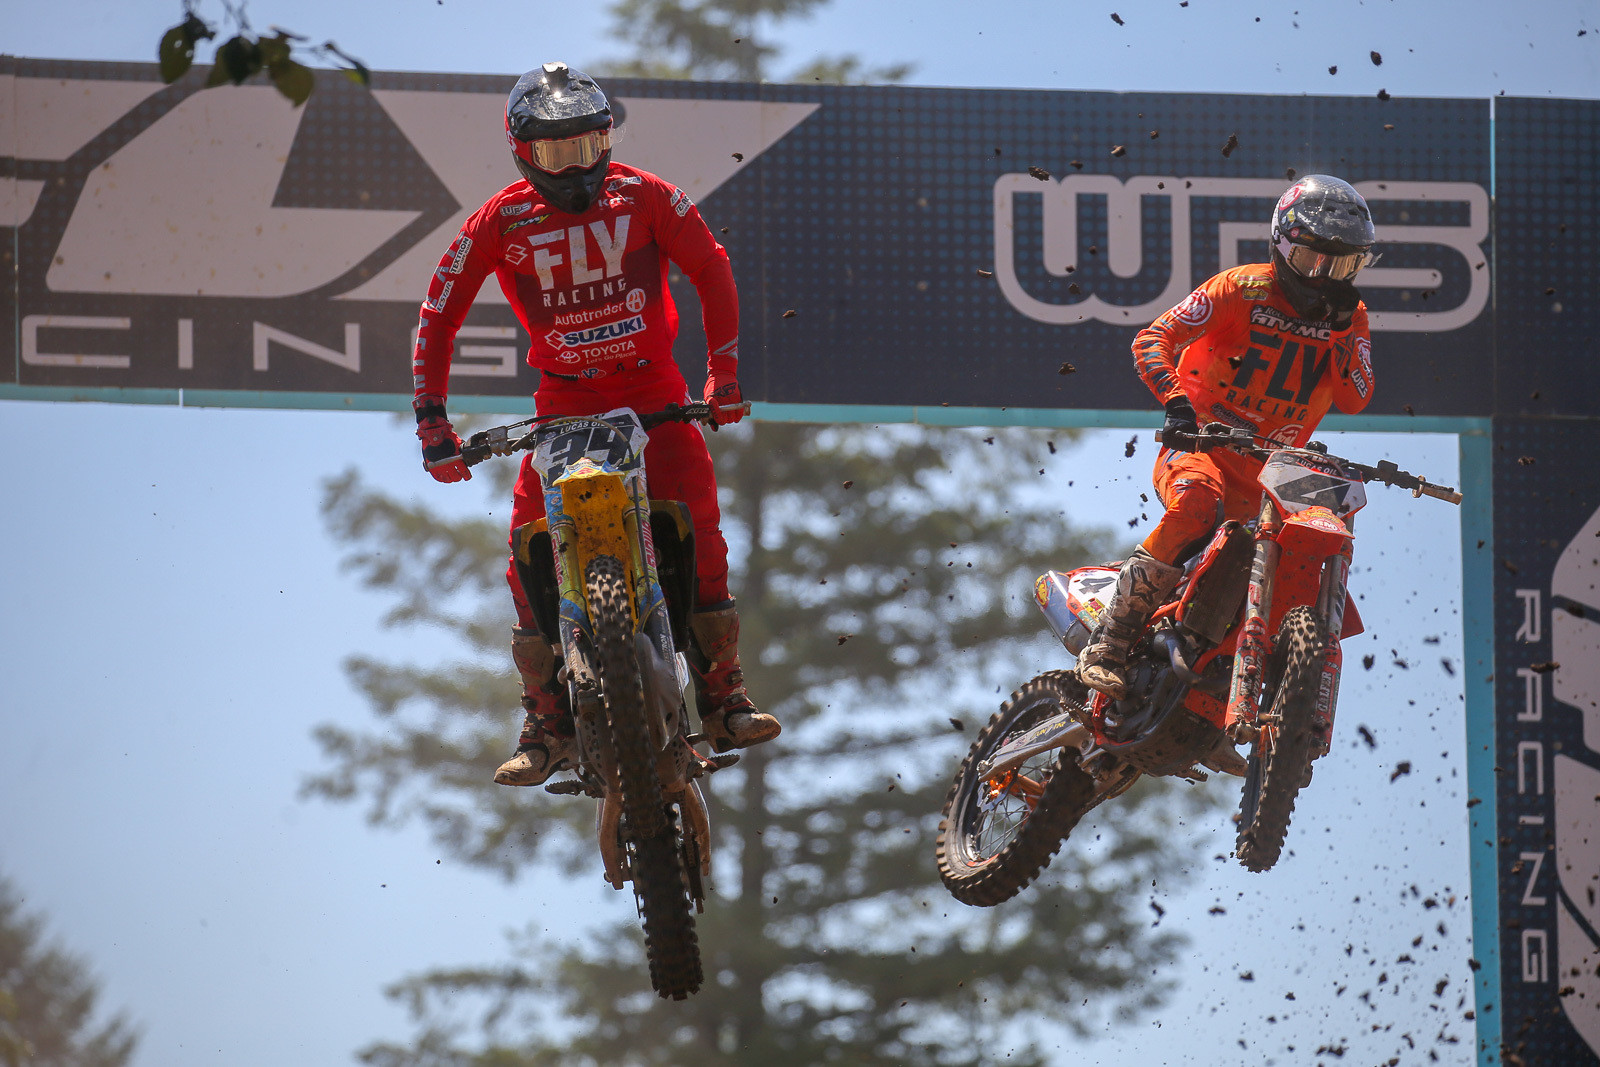 Fly did their on-track debut for lots of new gear this weekend, and Weston Peick and Blake Baggett figured prominently in its display. Blake was fifth overall this weekend, while Weston was eighth.